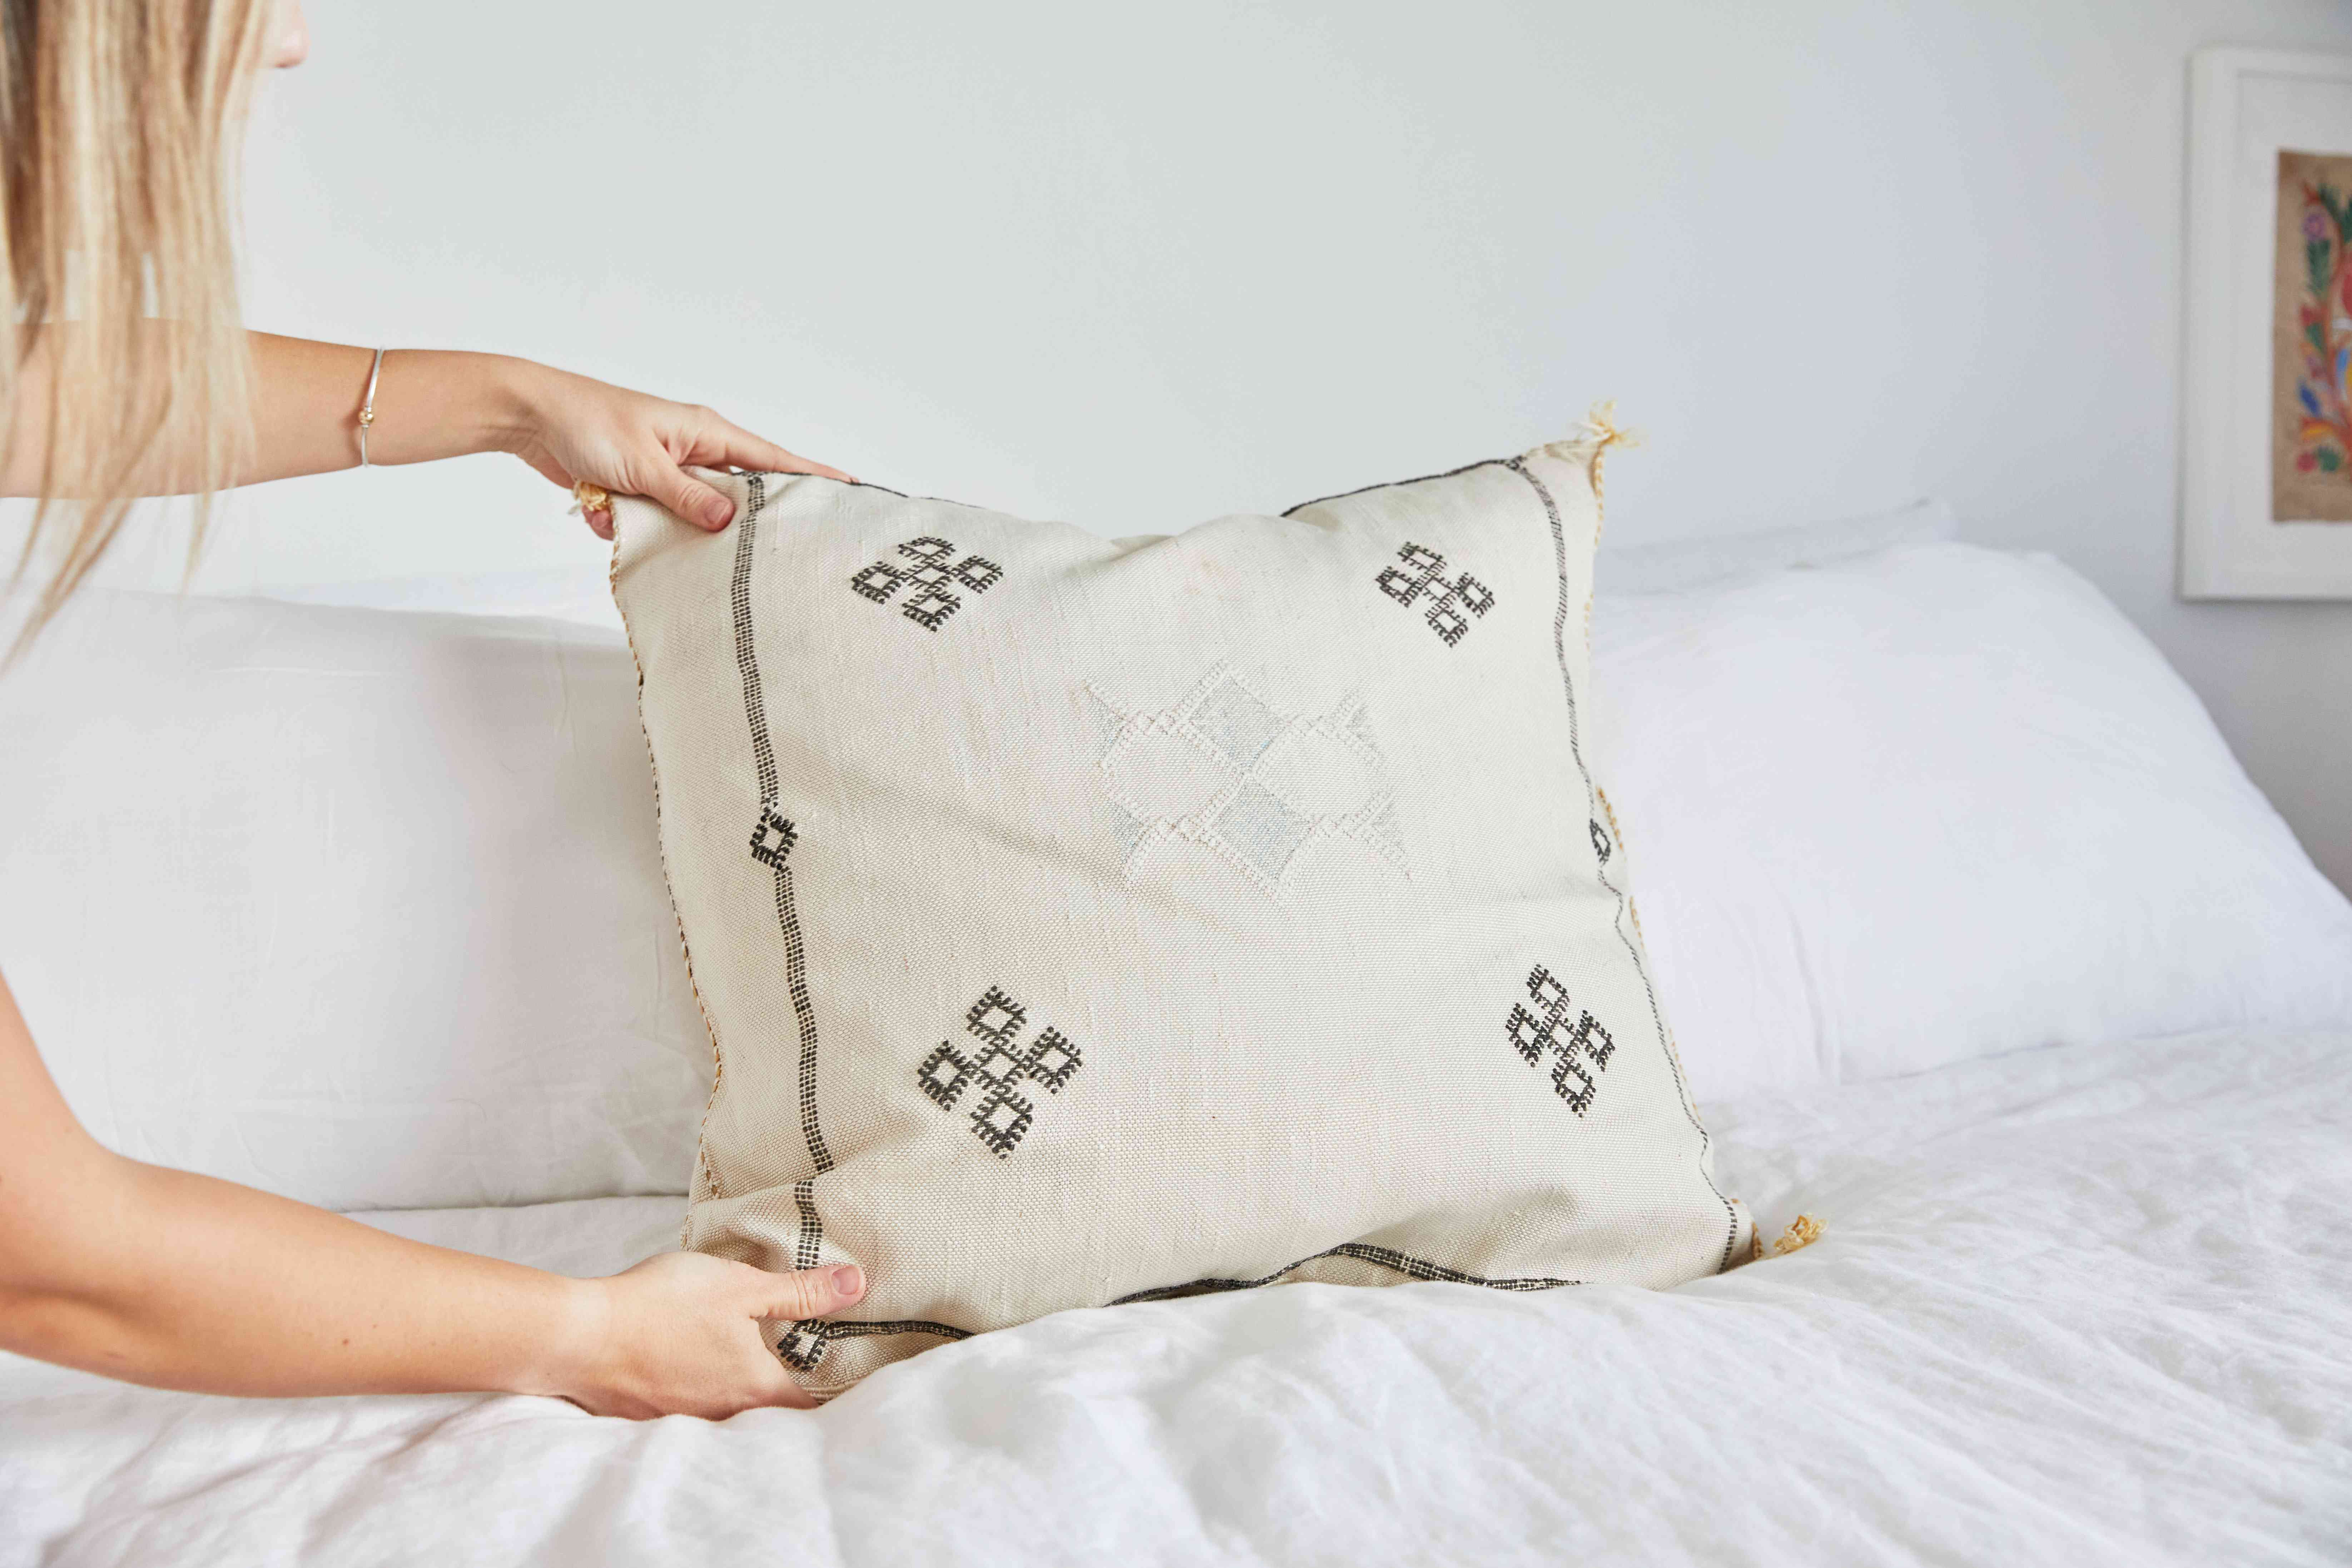 woman positioning a throw pillow on a bed